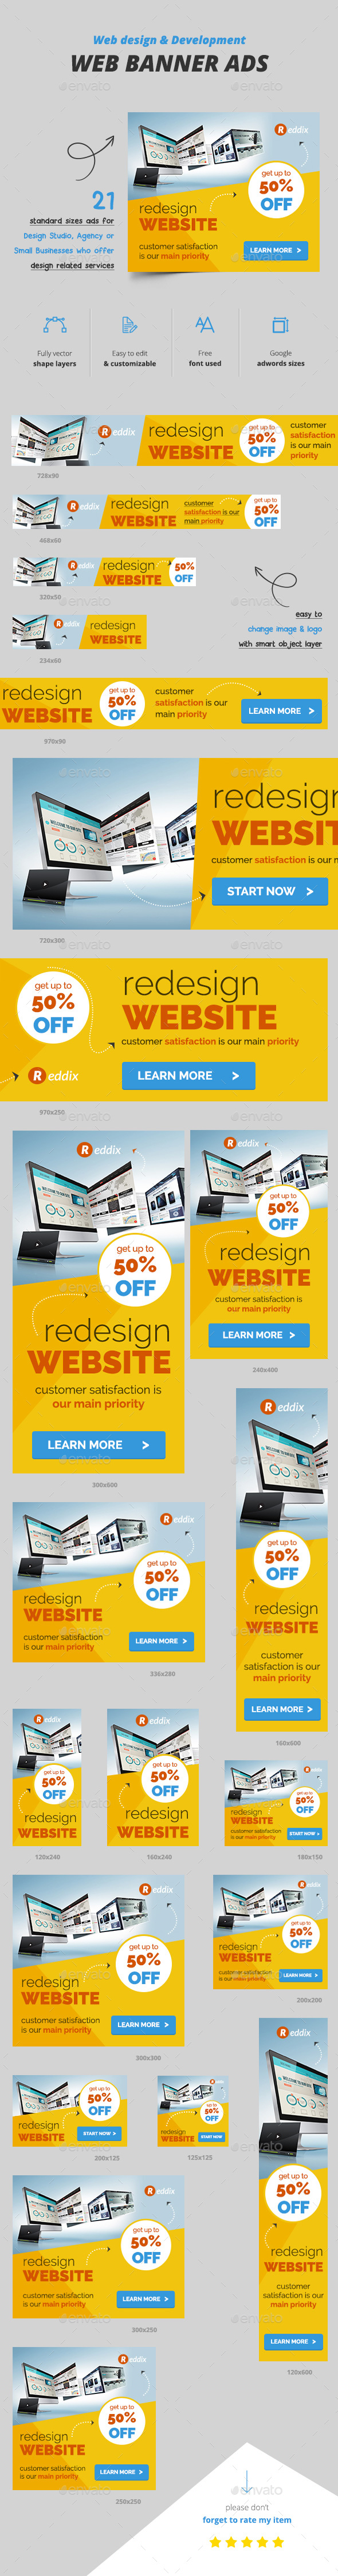 Web Design Banner Ads - Banners & Ads Web Elements